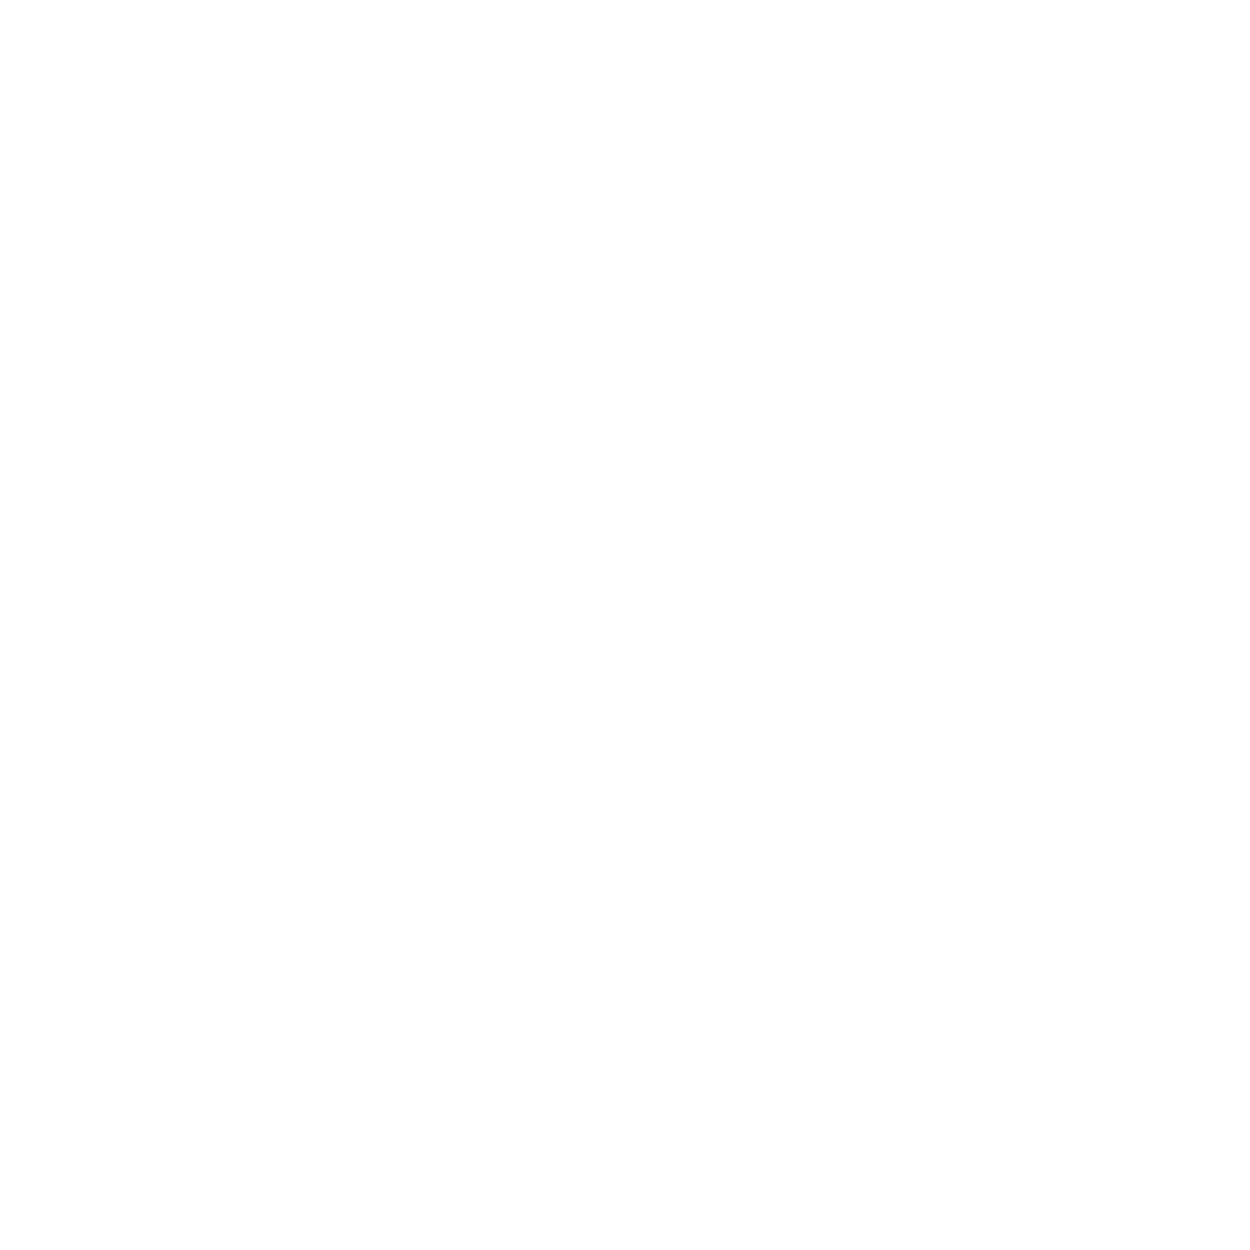 newconstruction 01